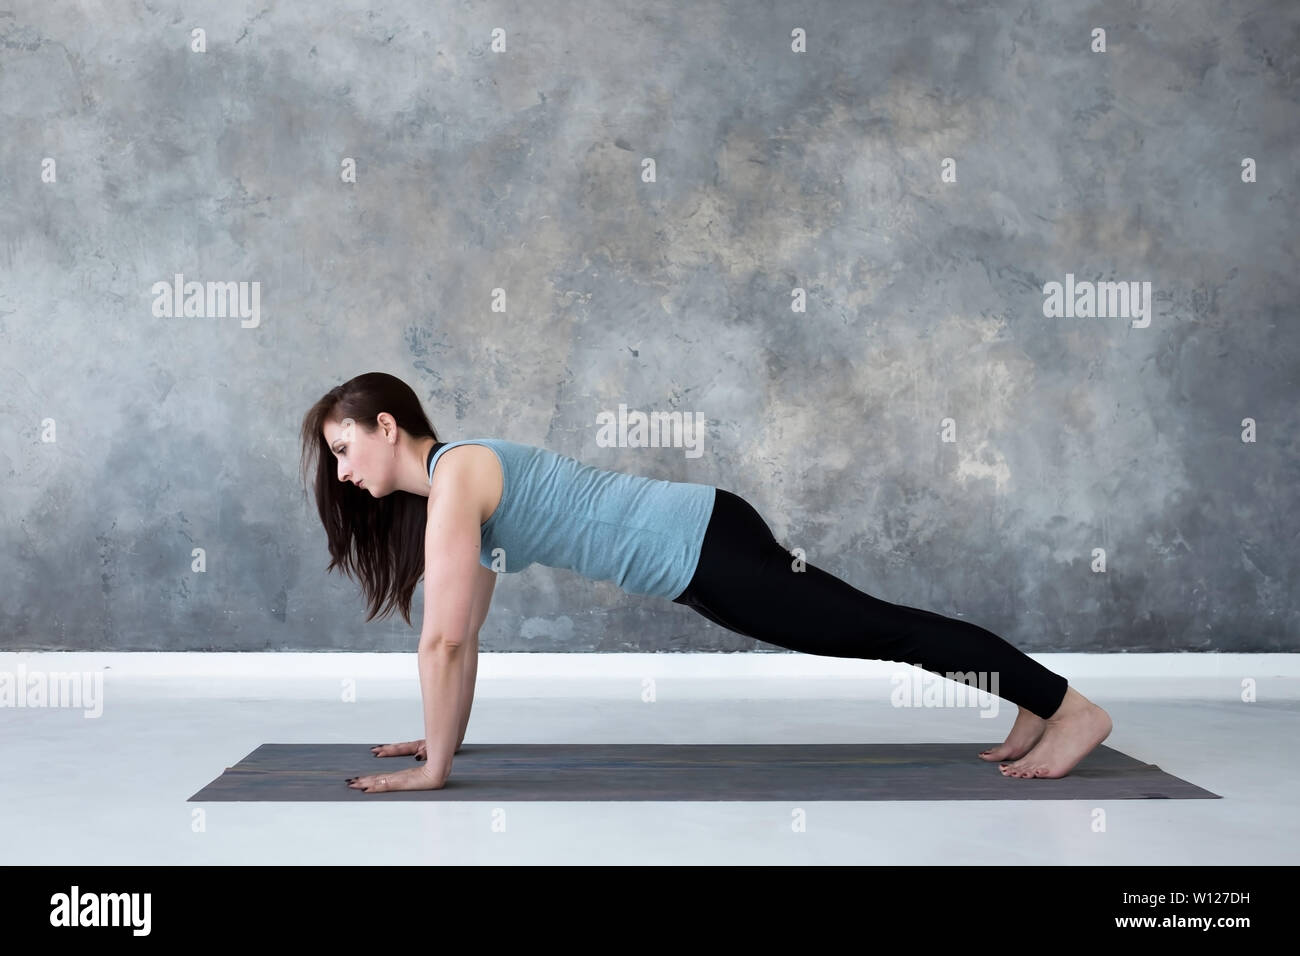 Young woman practicing yoga, doing Push ups or press ups exercise, Plank pose. - Stock Image